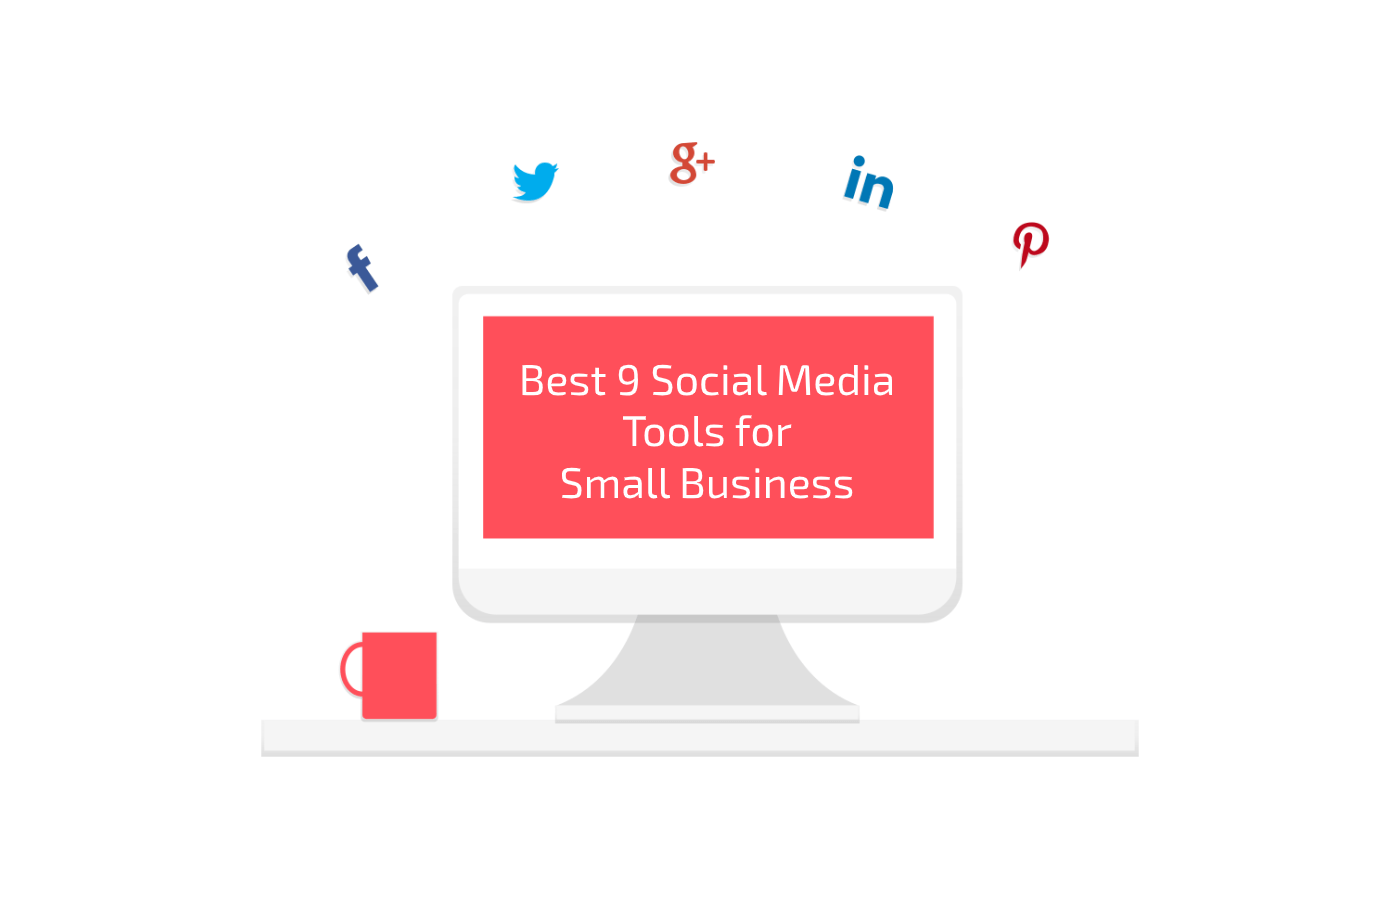 best_social_media_tools_for_small_business